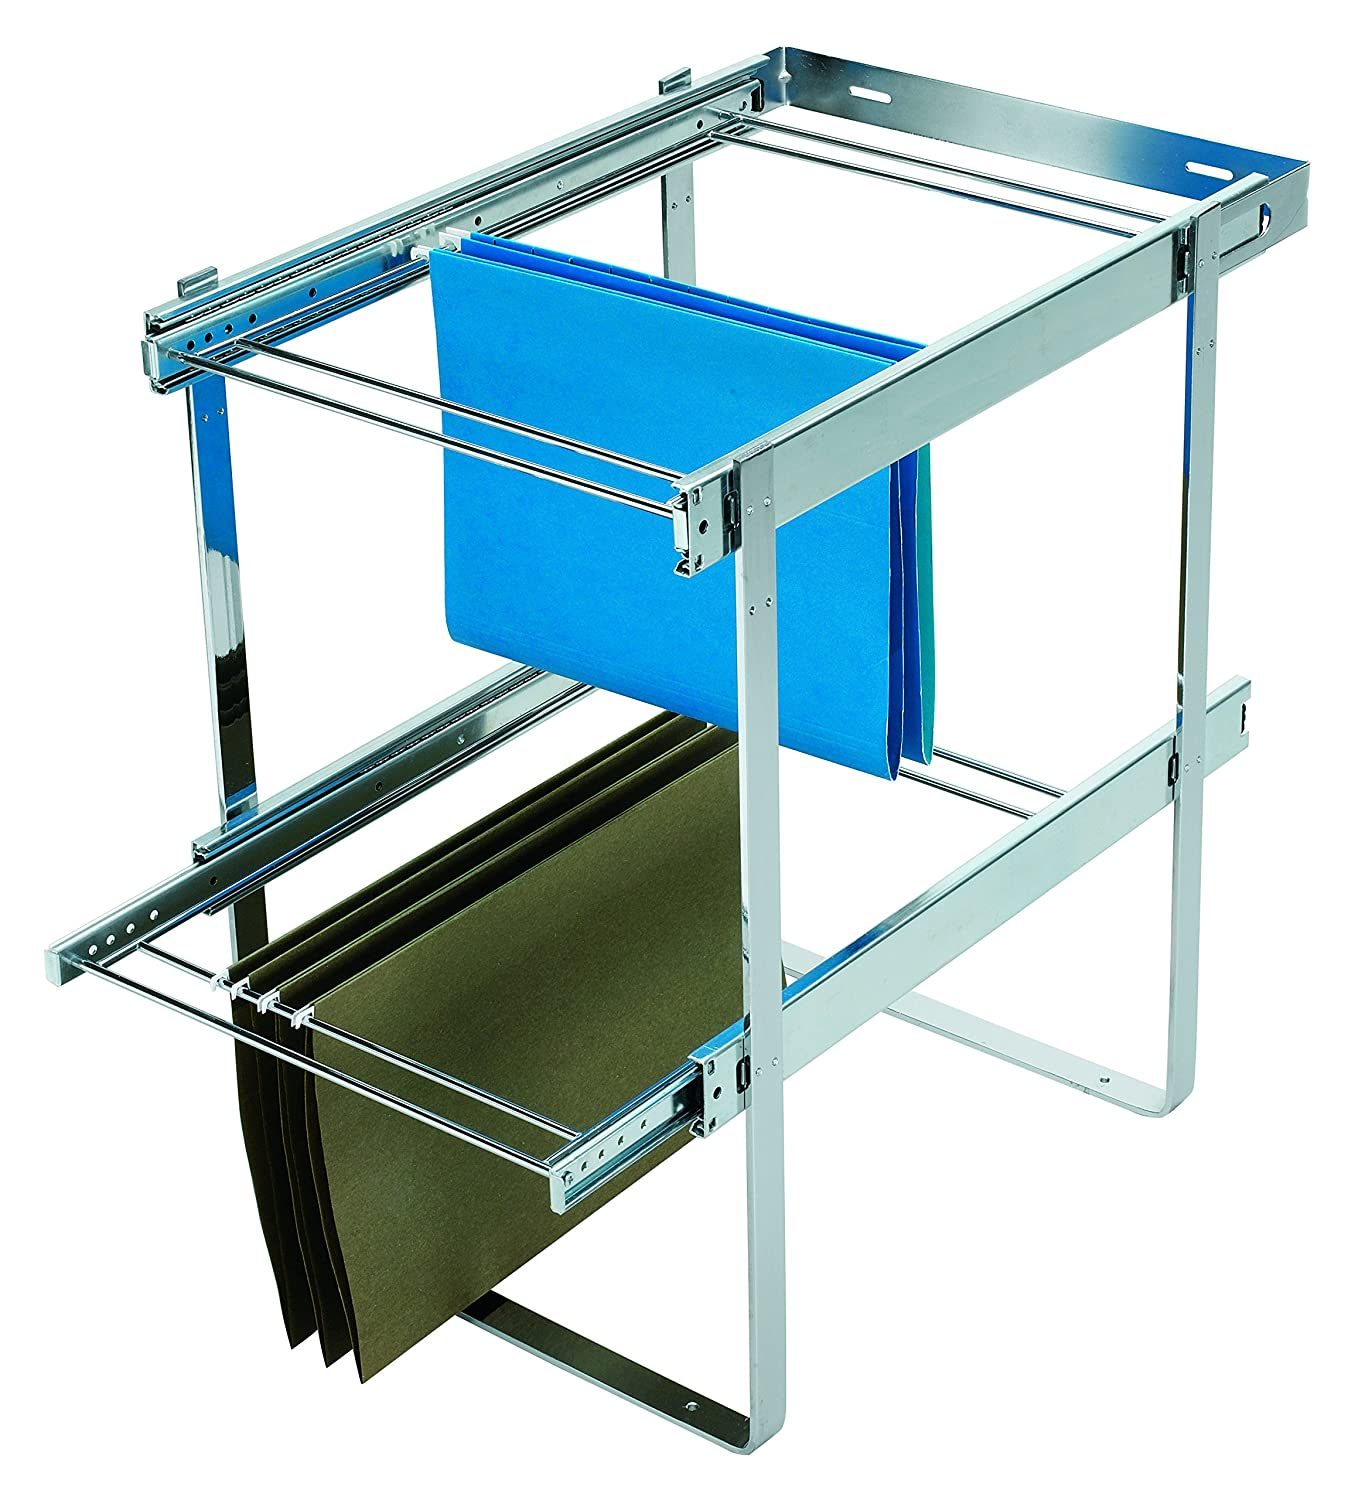 Rev-A-Shelf Two-Tier File Drawer Organizers, Chrome RAS-FD-KIT